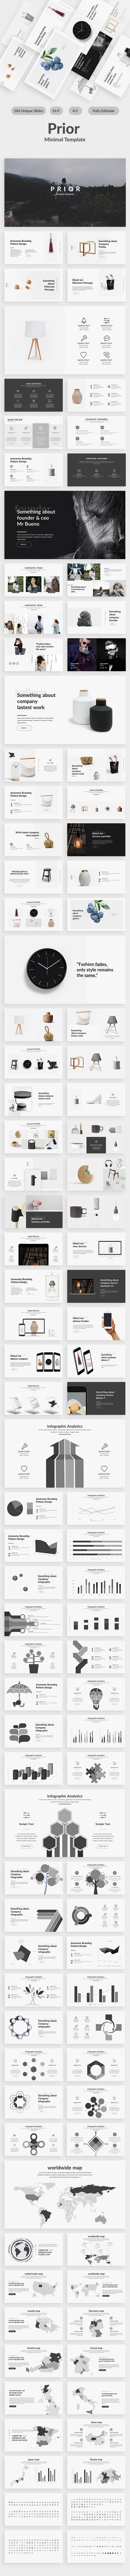 Prior Minimal Google Slide Template - Google Slides Presentation Templates